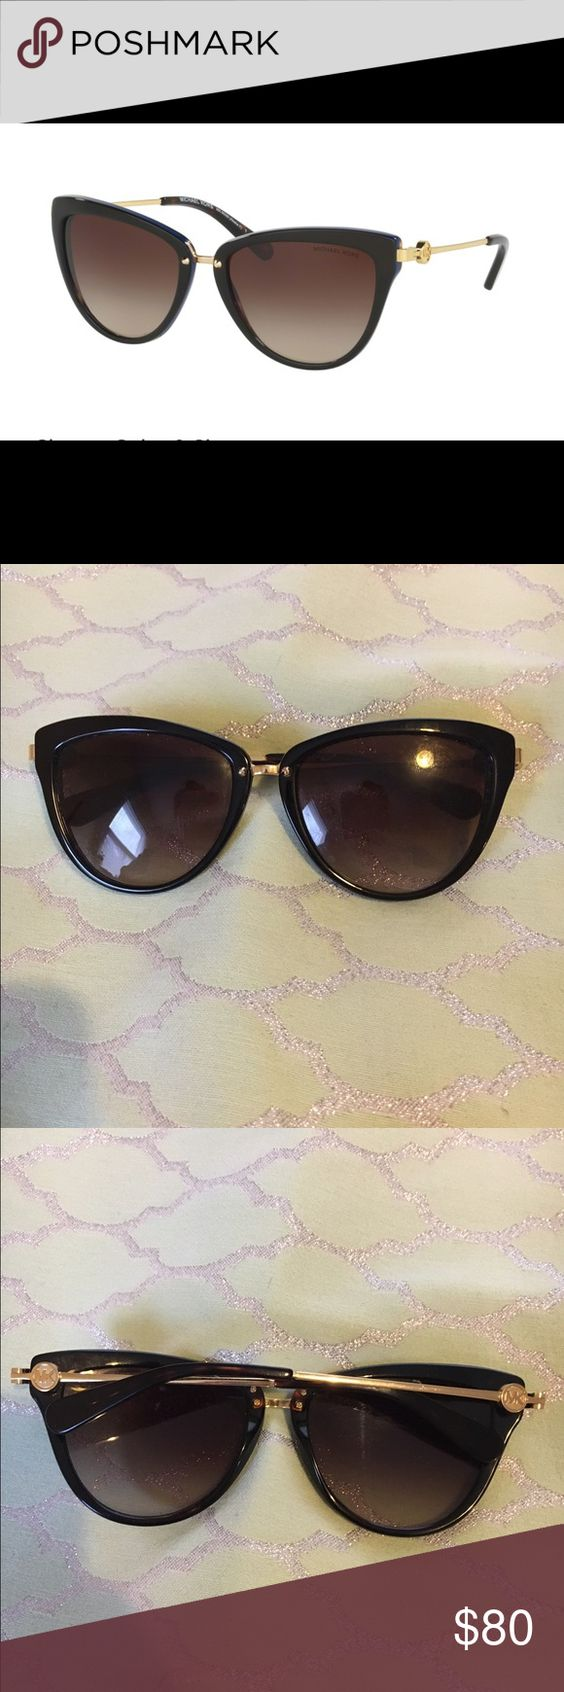 Michael Kors Abela ll sunglasses Michael Kors Abela ll sunglasses in DK tortoise blue. The front of the glasses are tortoise brown, with a blue rim on the side around them as shown in the picture with the ear pieces being tortoise brown also. They have the gold MK logo on both sides. Excellent condition. Do not have a box. Michael Kors Accessories Sunglasses